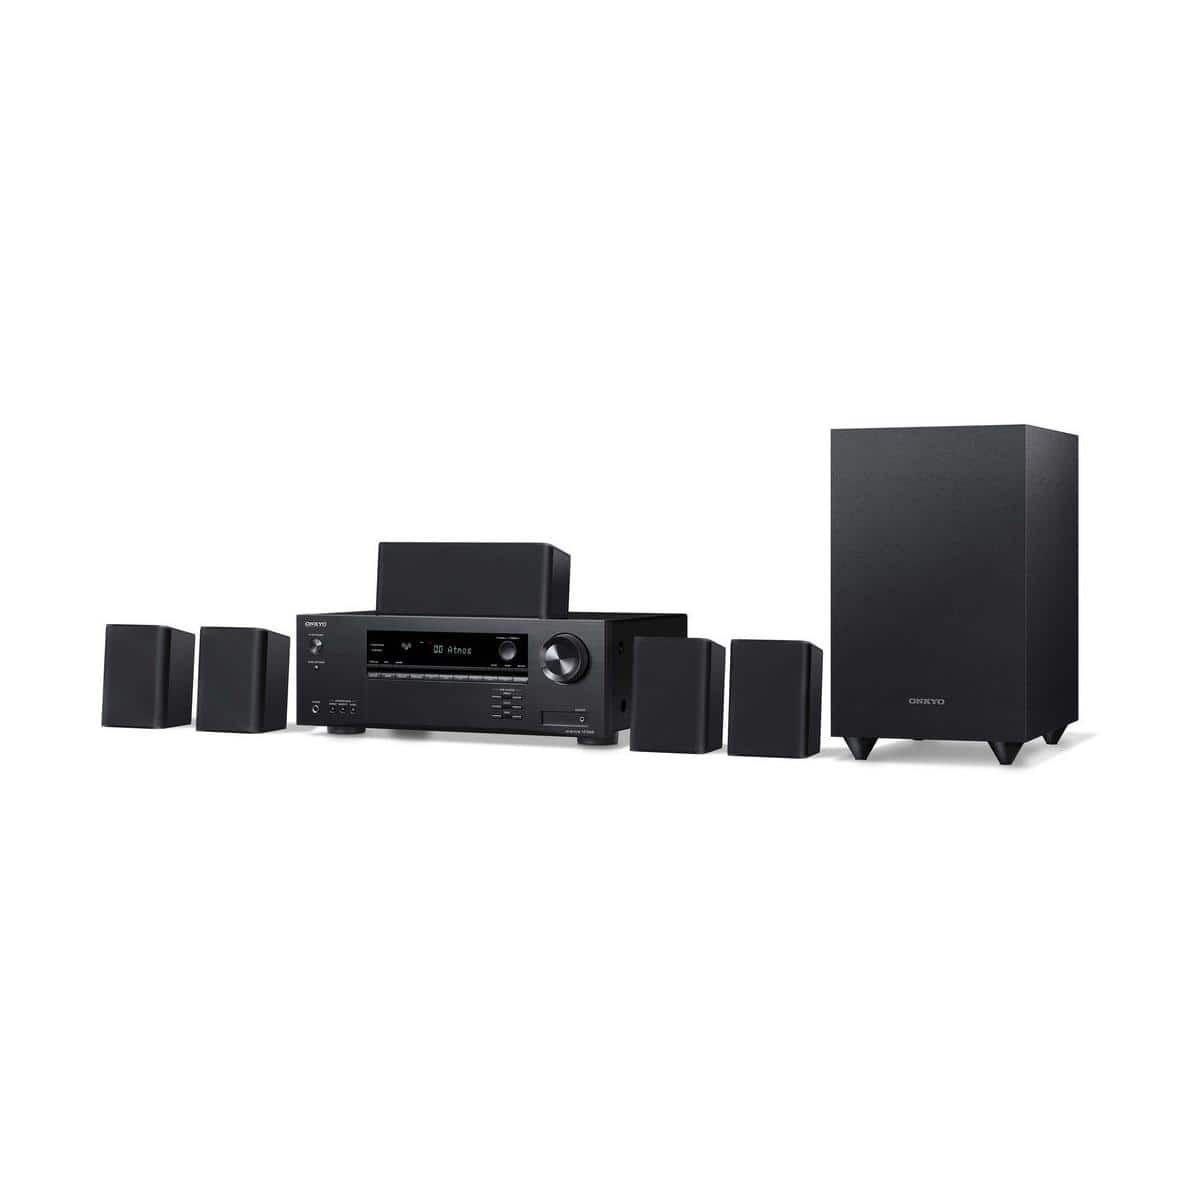 Onkyo HT-S3910 5.1-Channel Home Theater System $319 (or less w/ SD Cashback) + Free Shipping